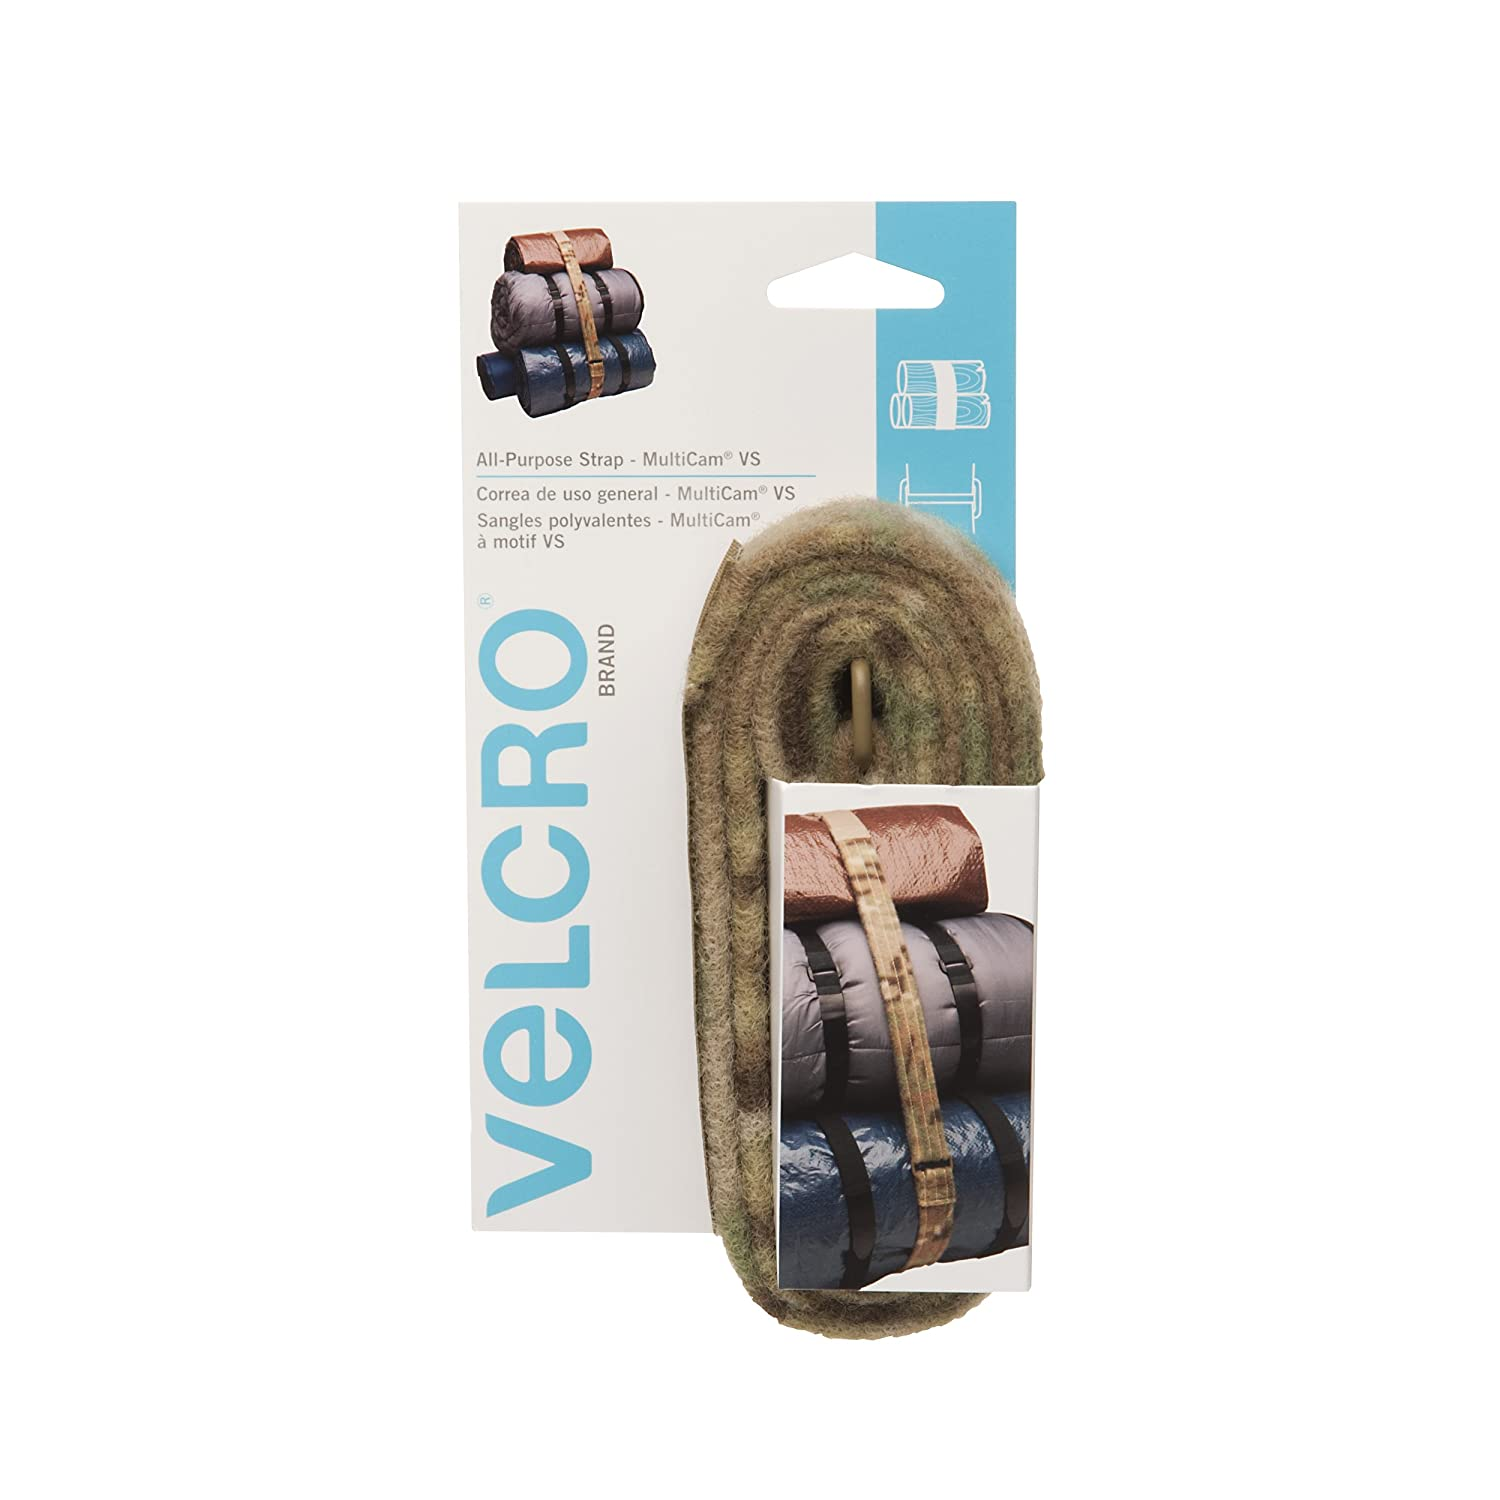 VELCRO Brand All-Purpose Strap | Strong & Reusable | Perfect for Fastening Wires & Organizing Cords | Camouflage, 6ft x 1 1/2in VELCRO USA VELCRO® Brand 91758